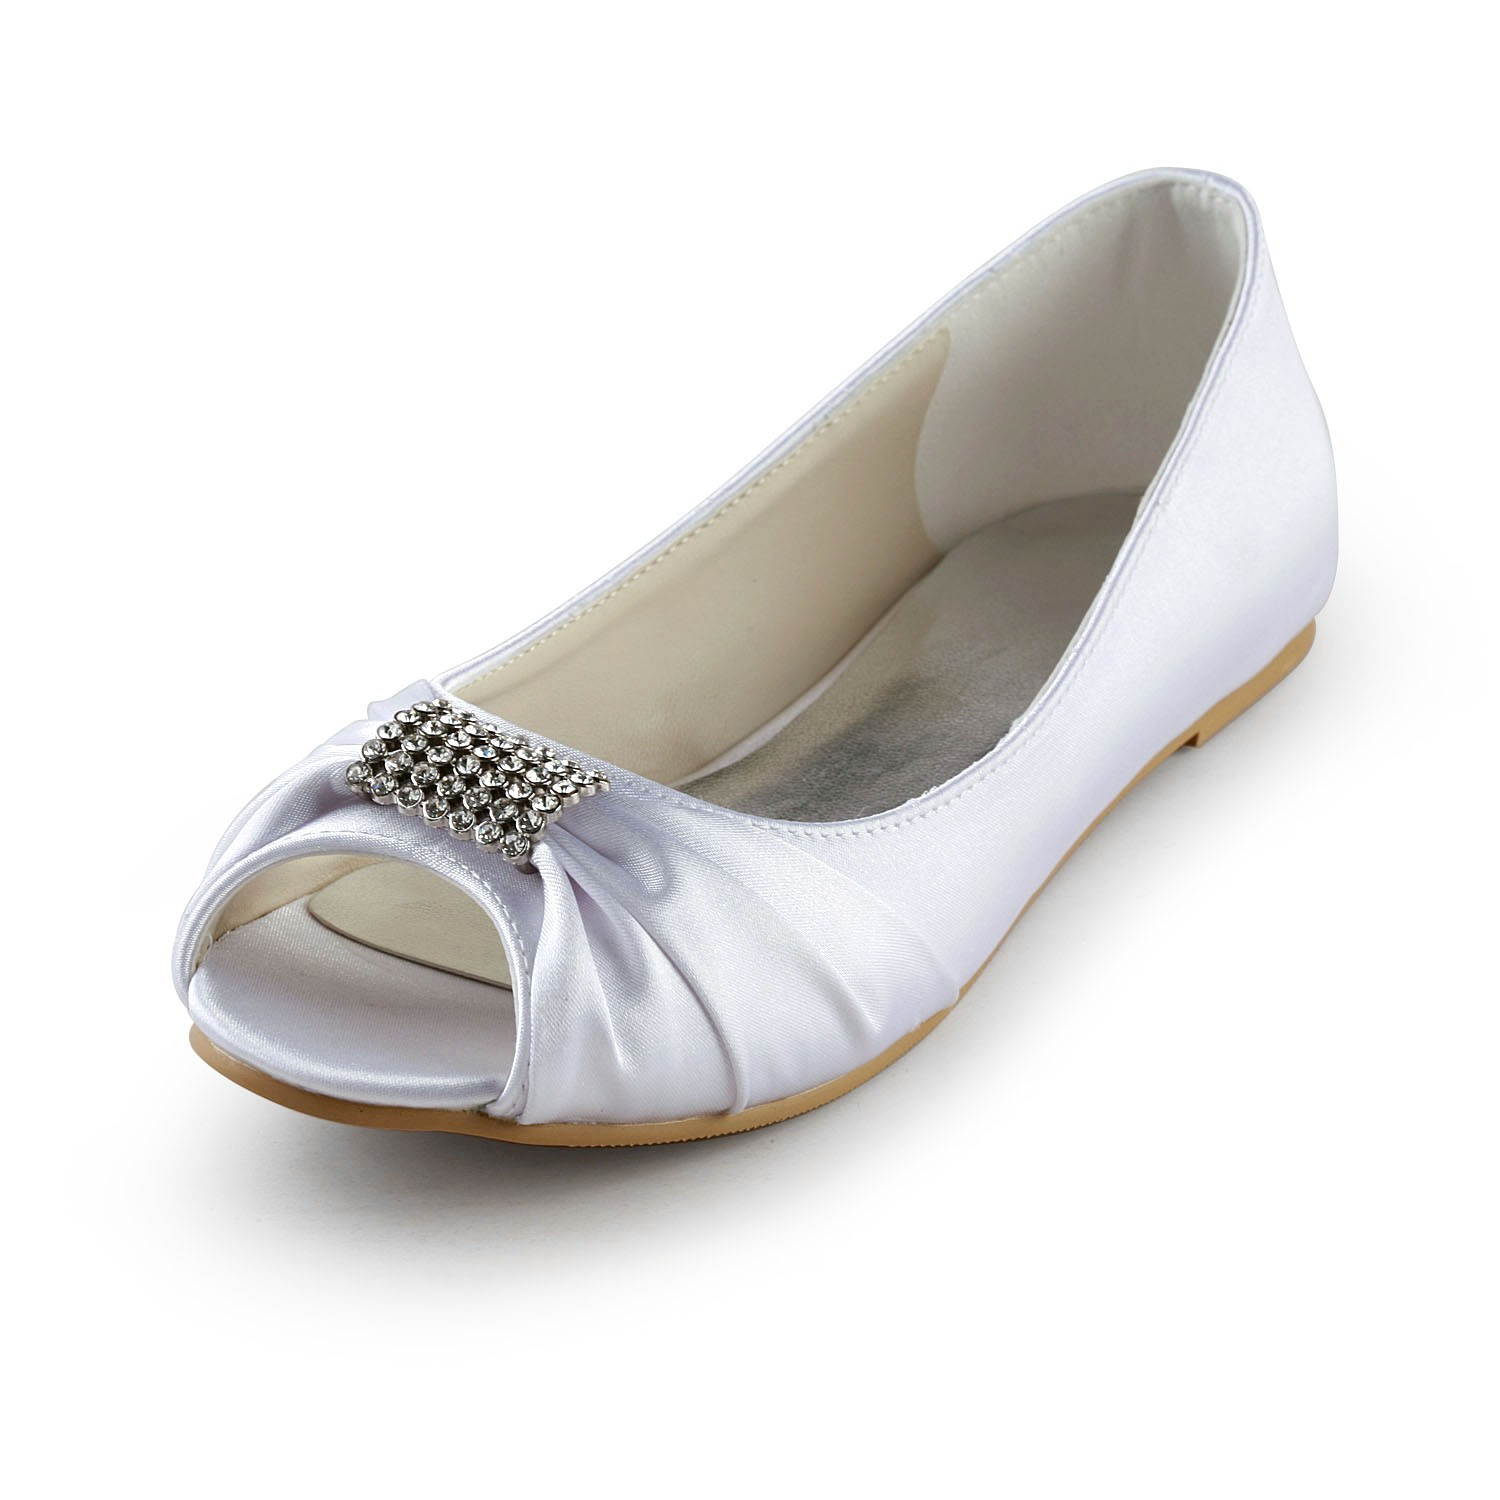 d5d7a6f5eb8 Women s Satin Flat Heel Peep Toe Sandals White Wedding Shoes With Rhinestone